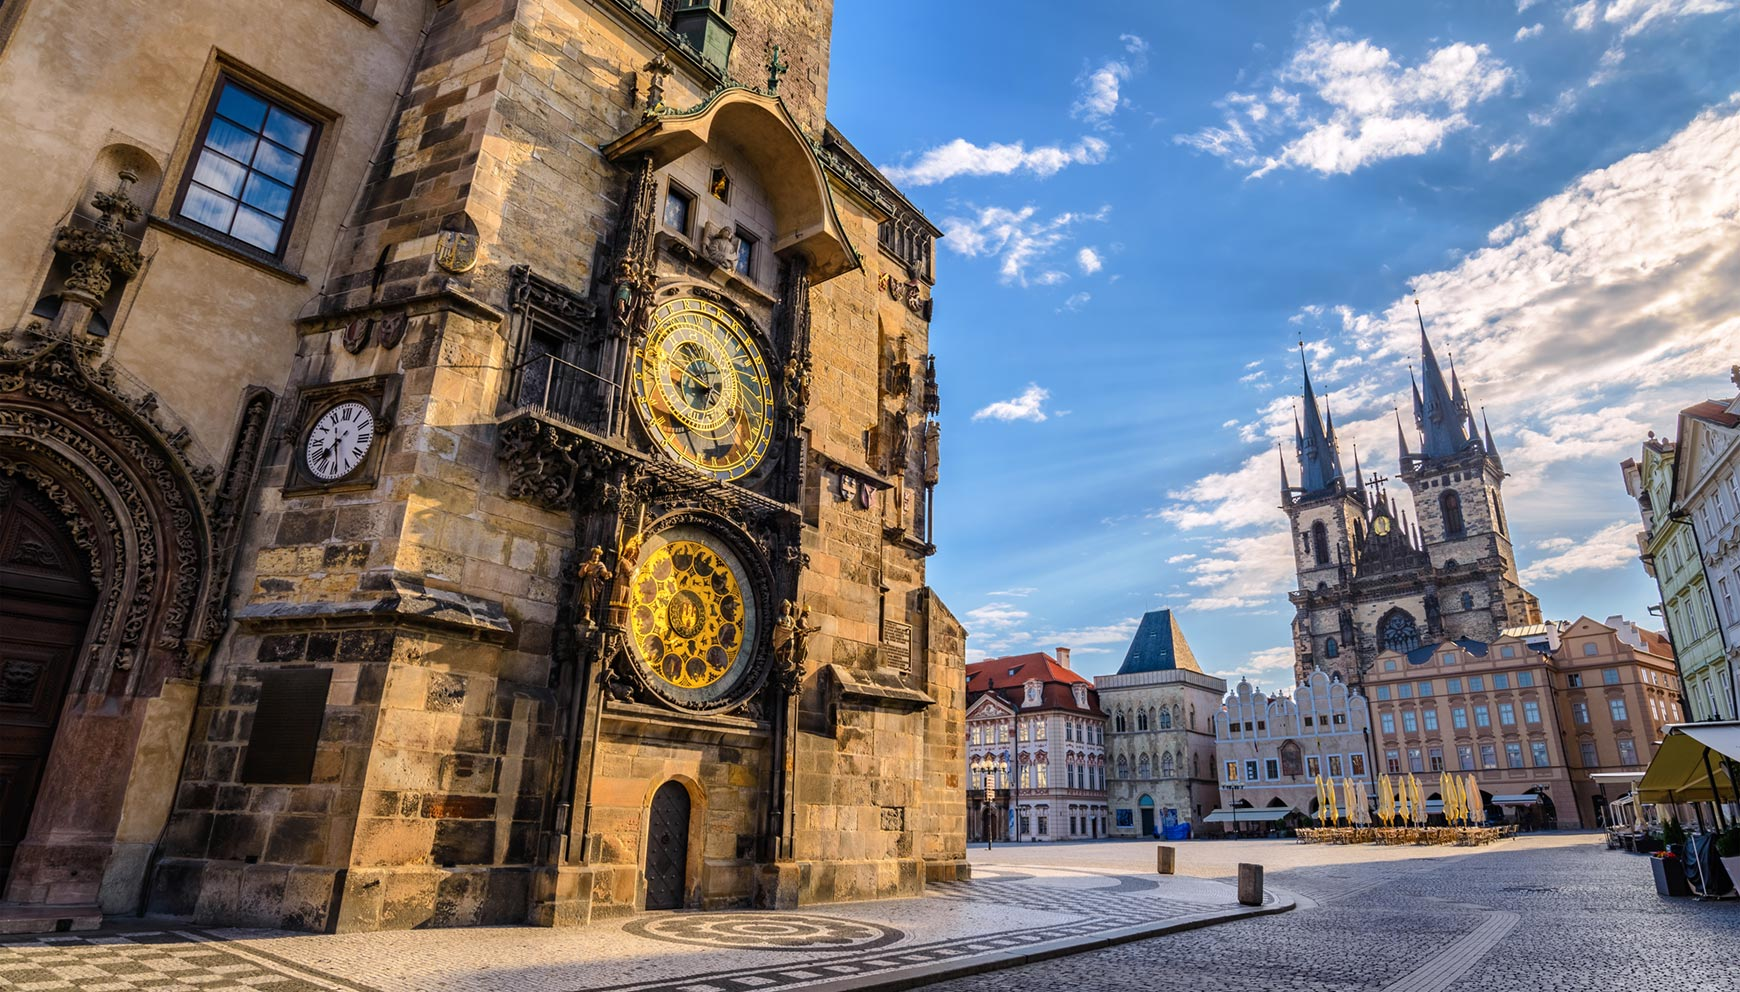 The Old Town Square in Prague